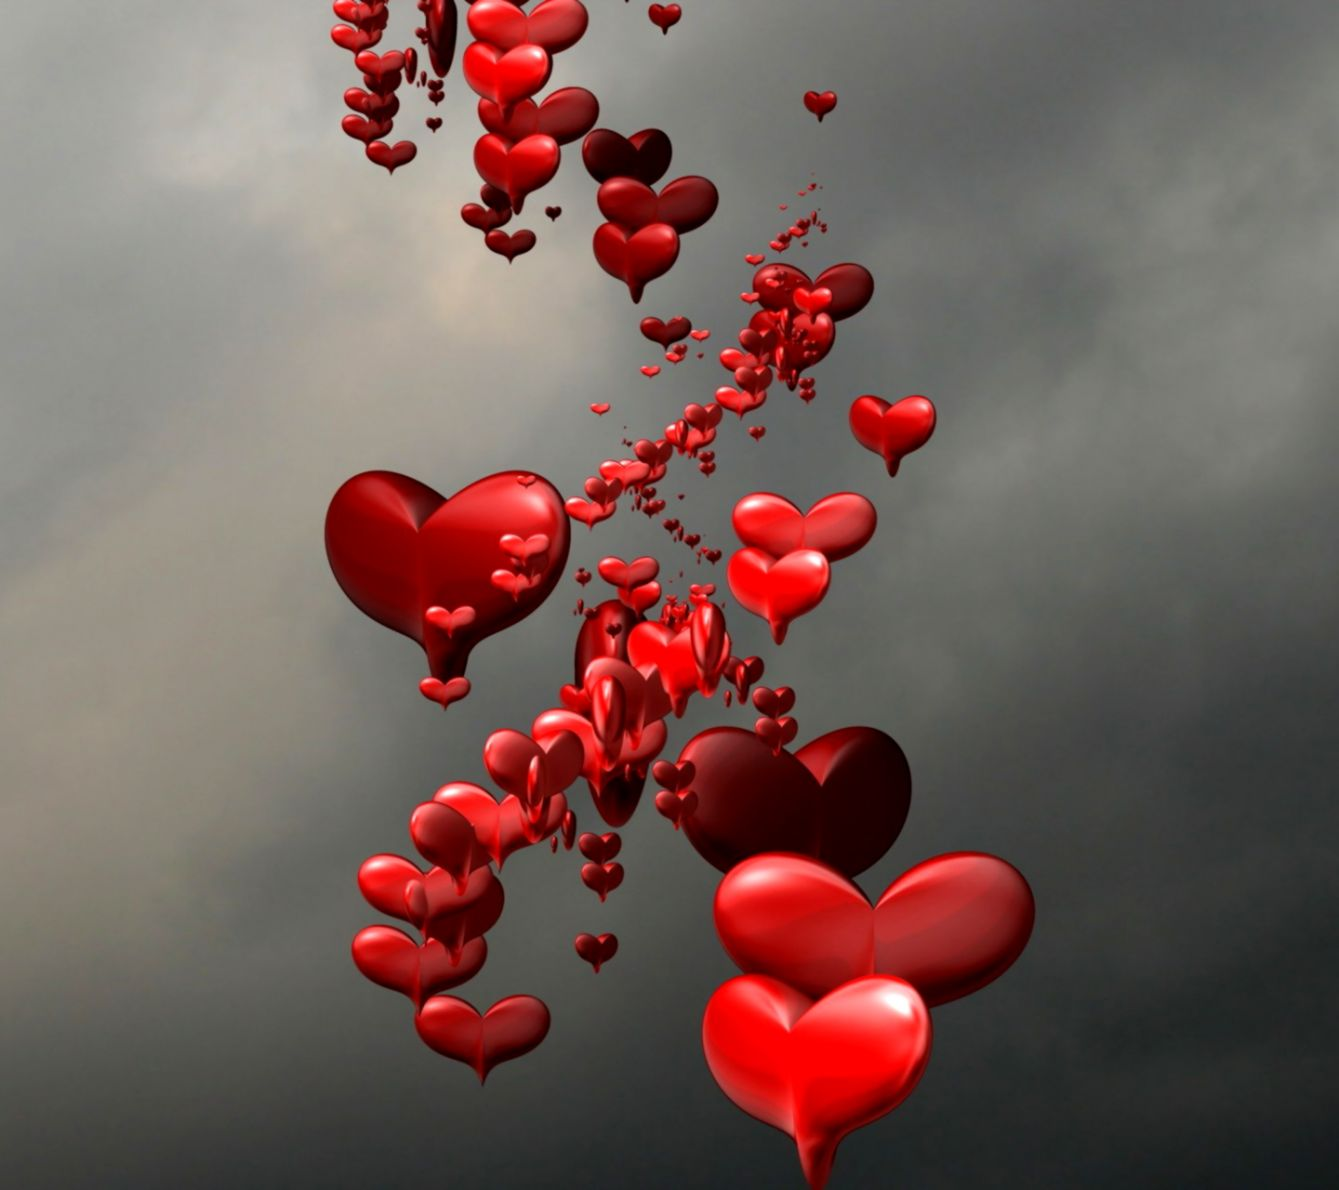 Free Download Abstract Love Wallpaper Hd Wallpapers Awards